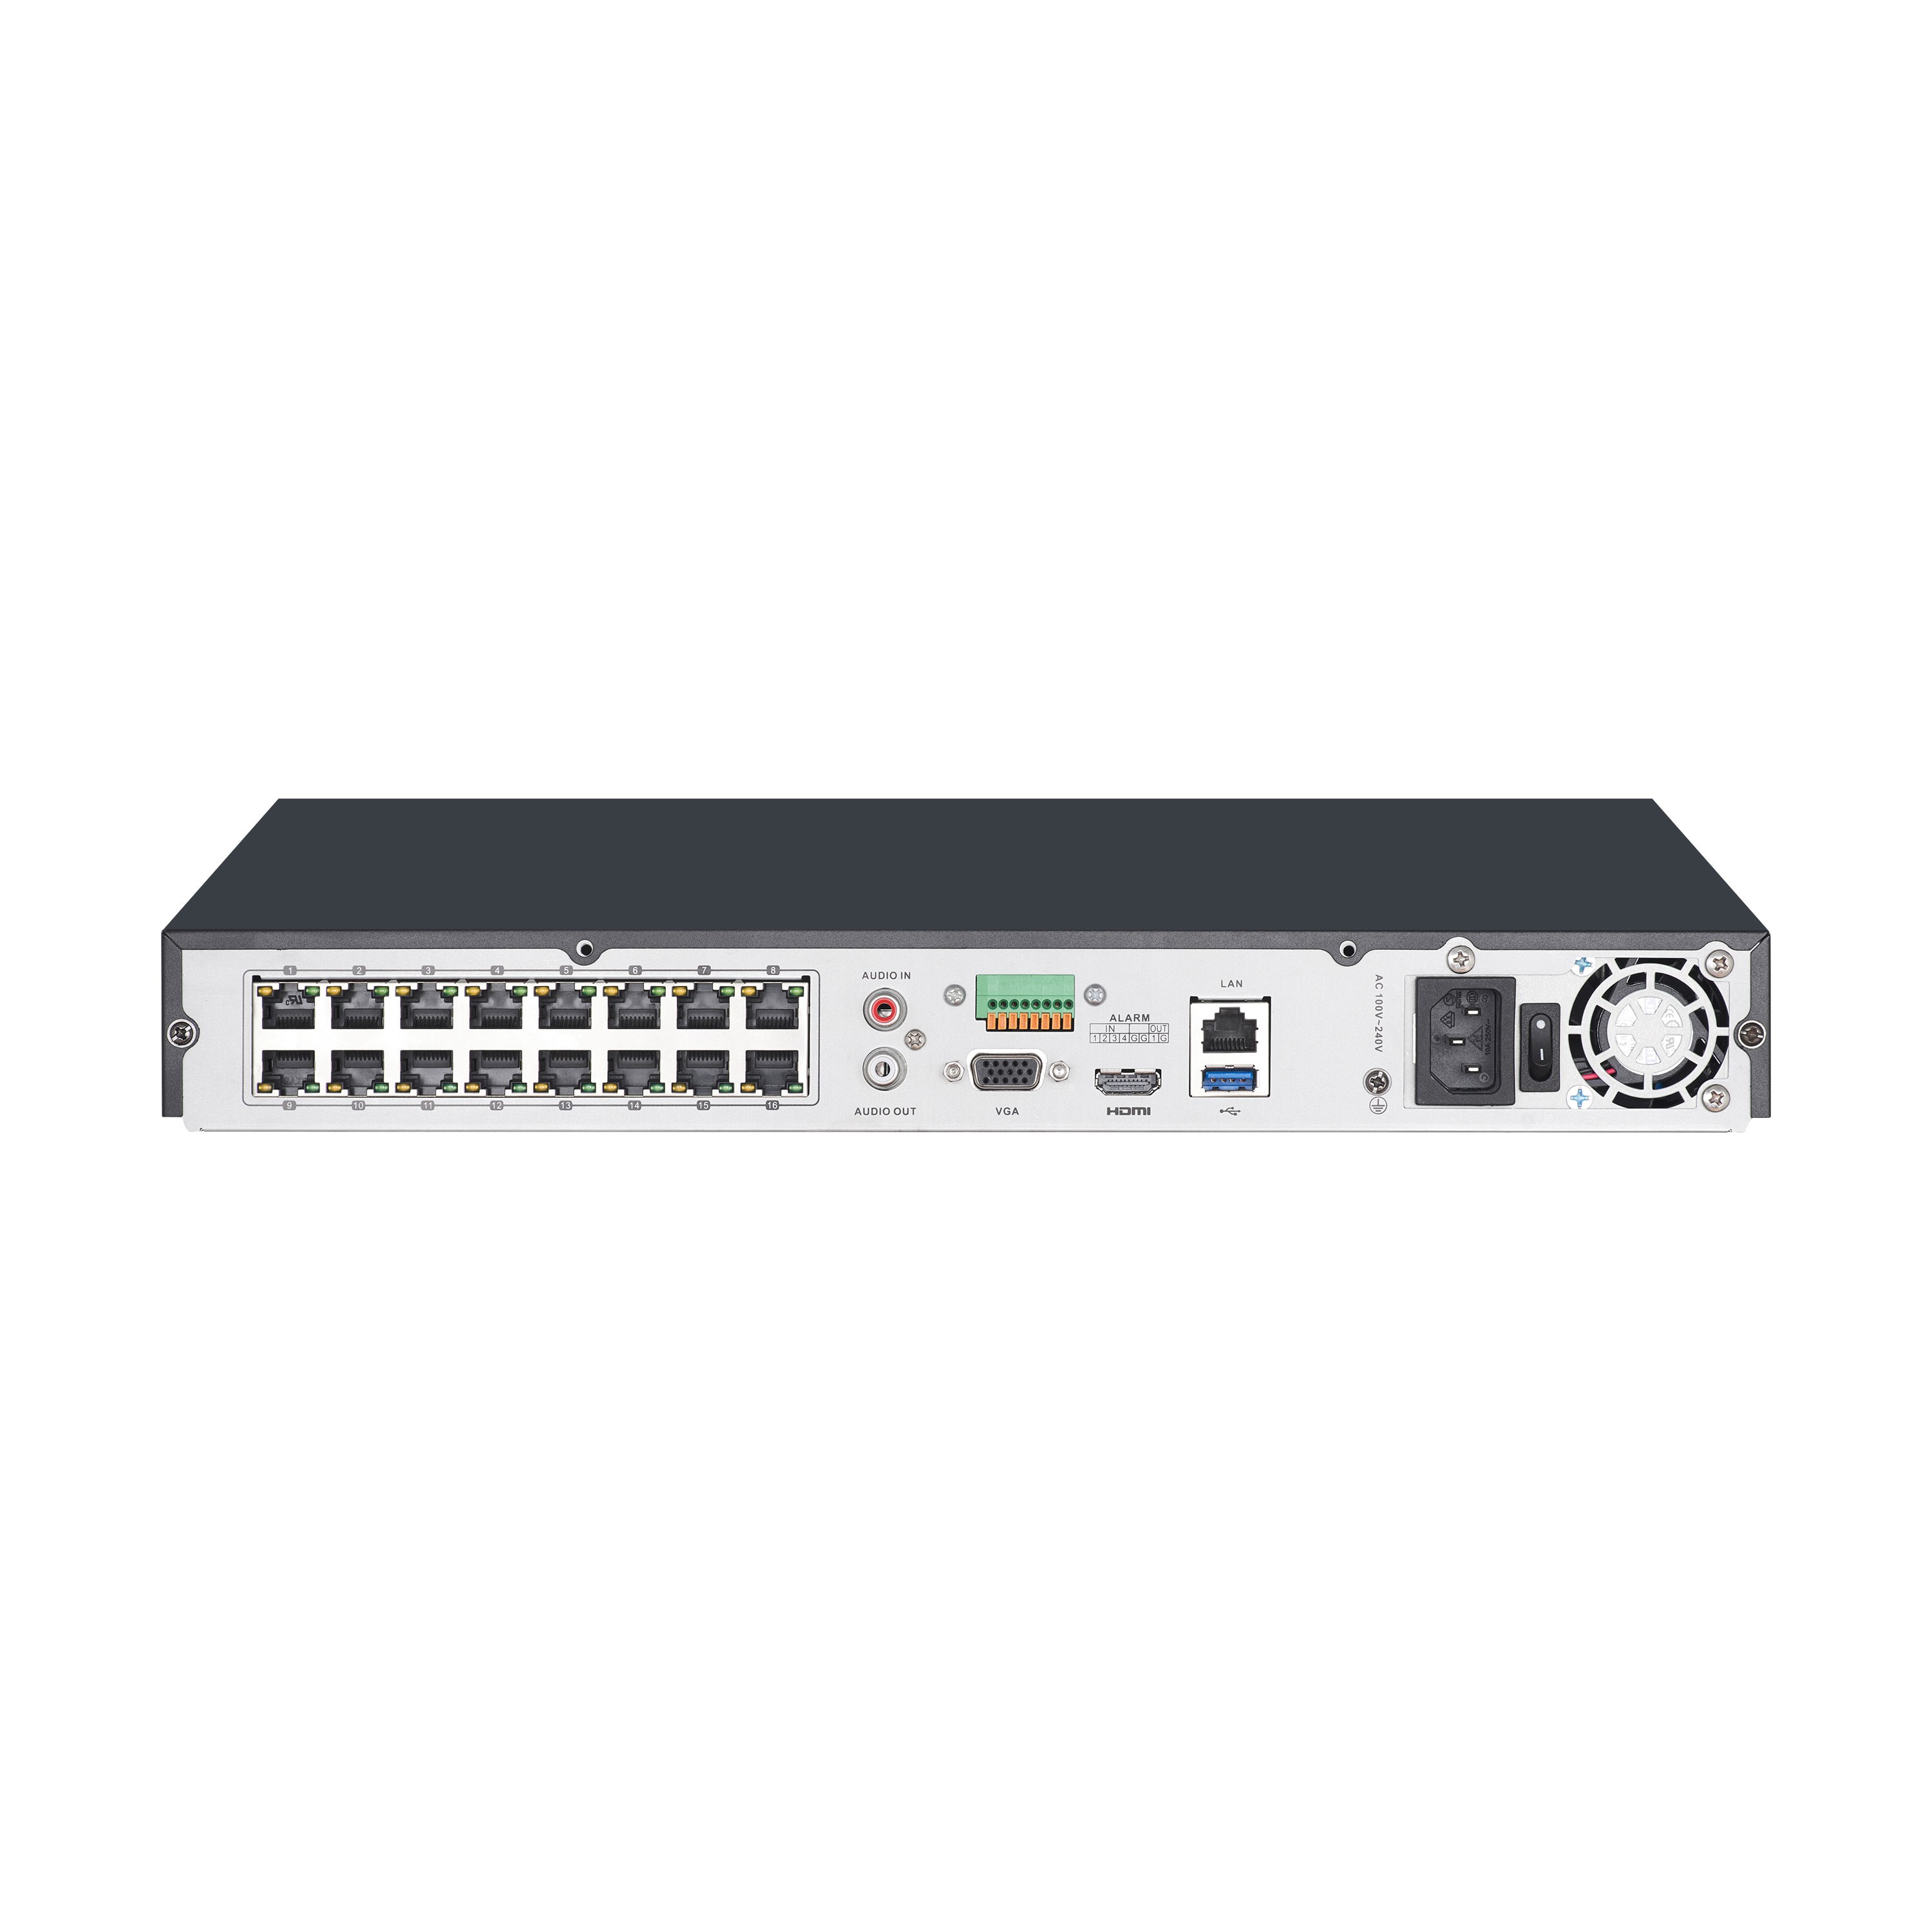 16 Channel 4k Uhd Nvr Security System With 8 Nhd 880 Bullet Cameras Home Blog Product Highlights Poe Network Switch For Ip Camera Review Nvr16 8000 Usa